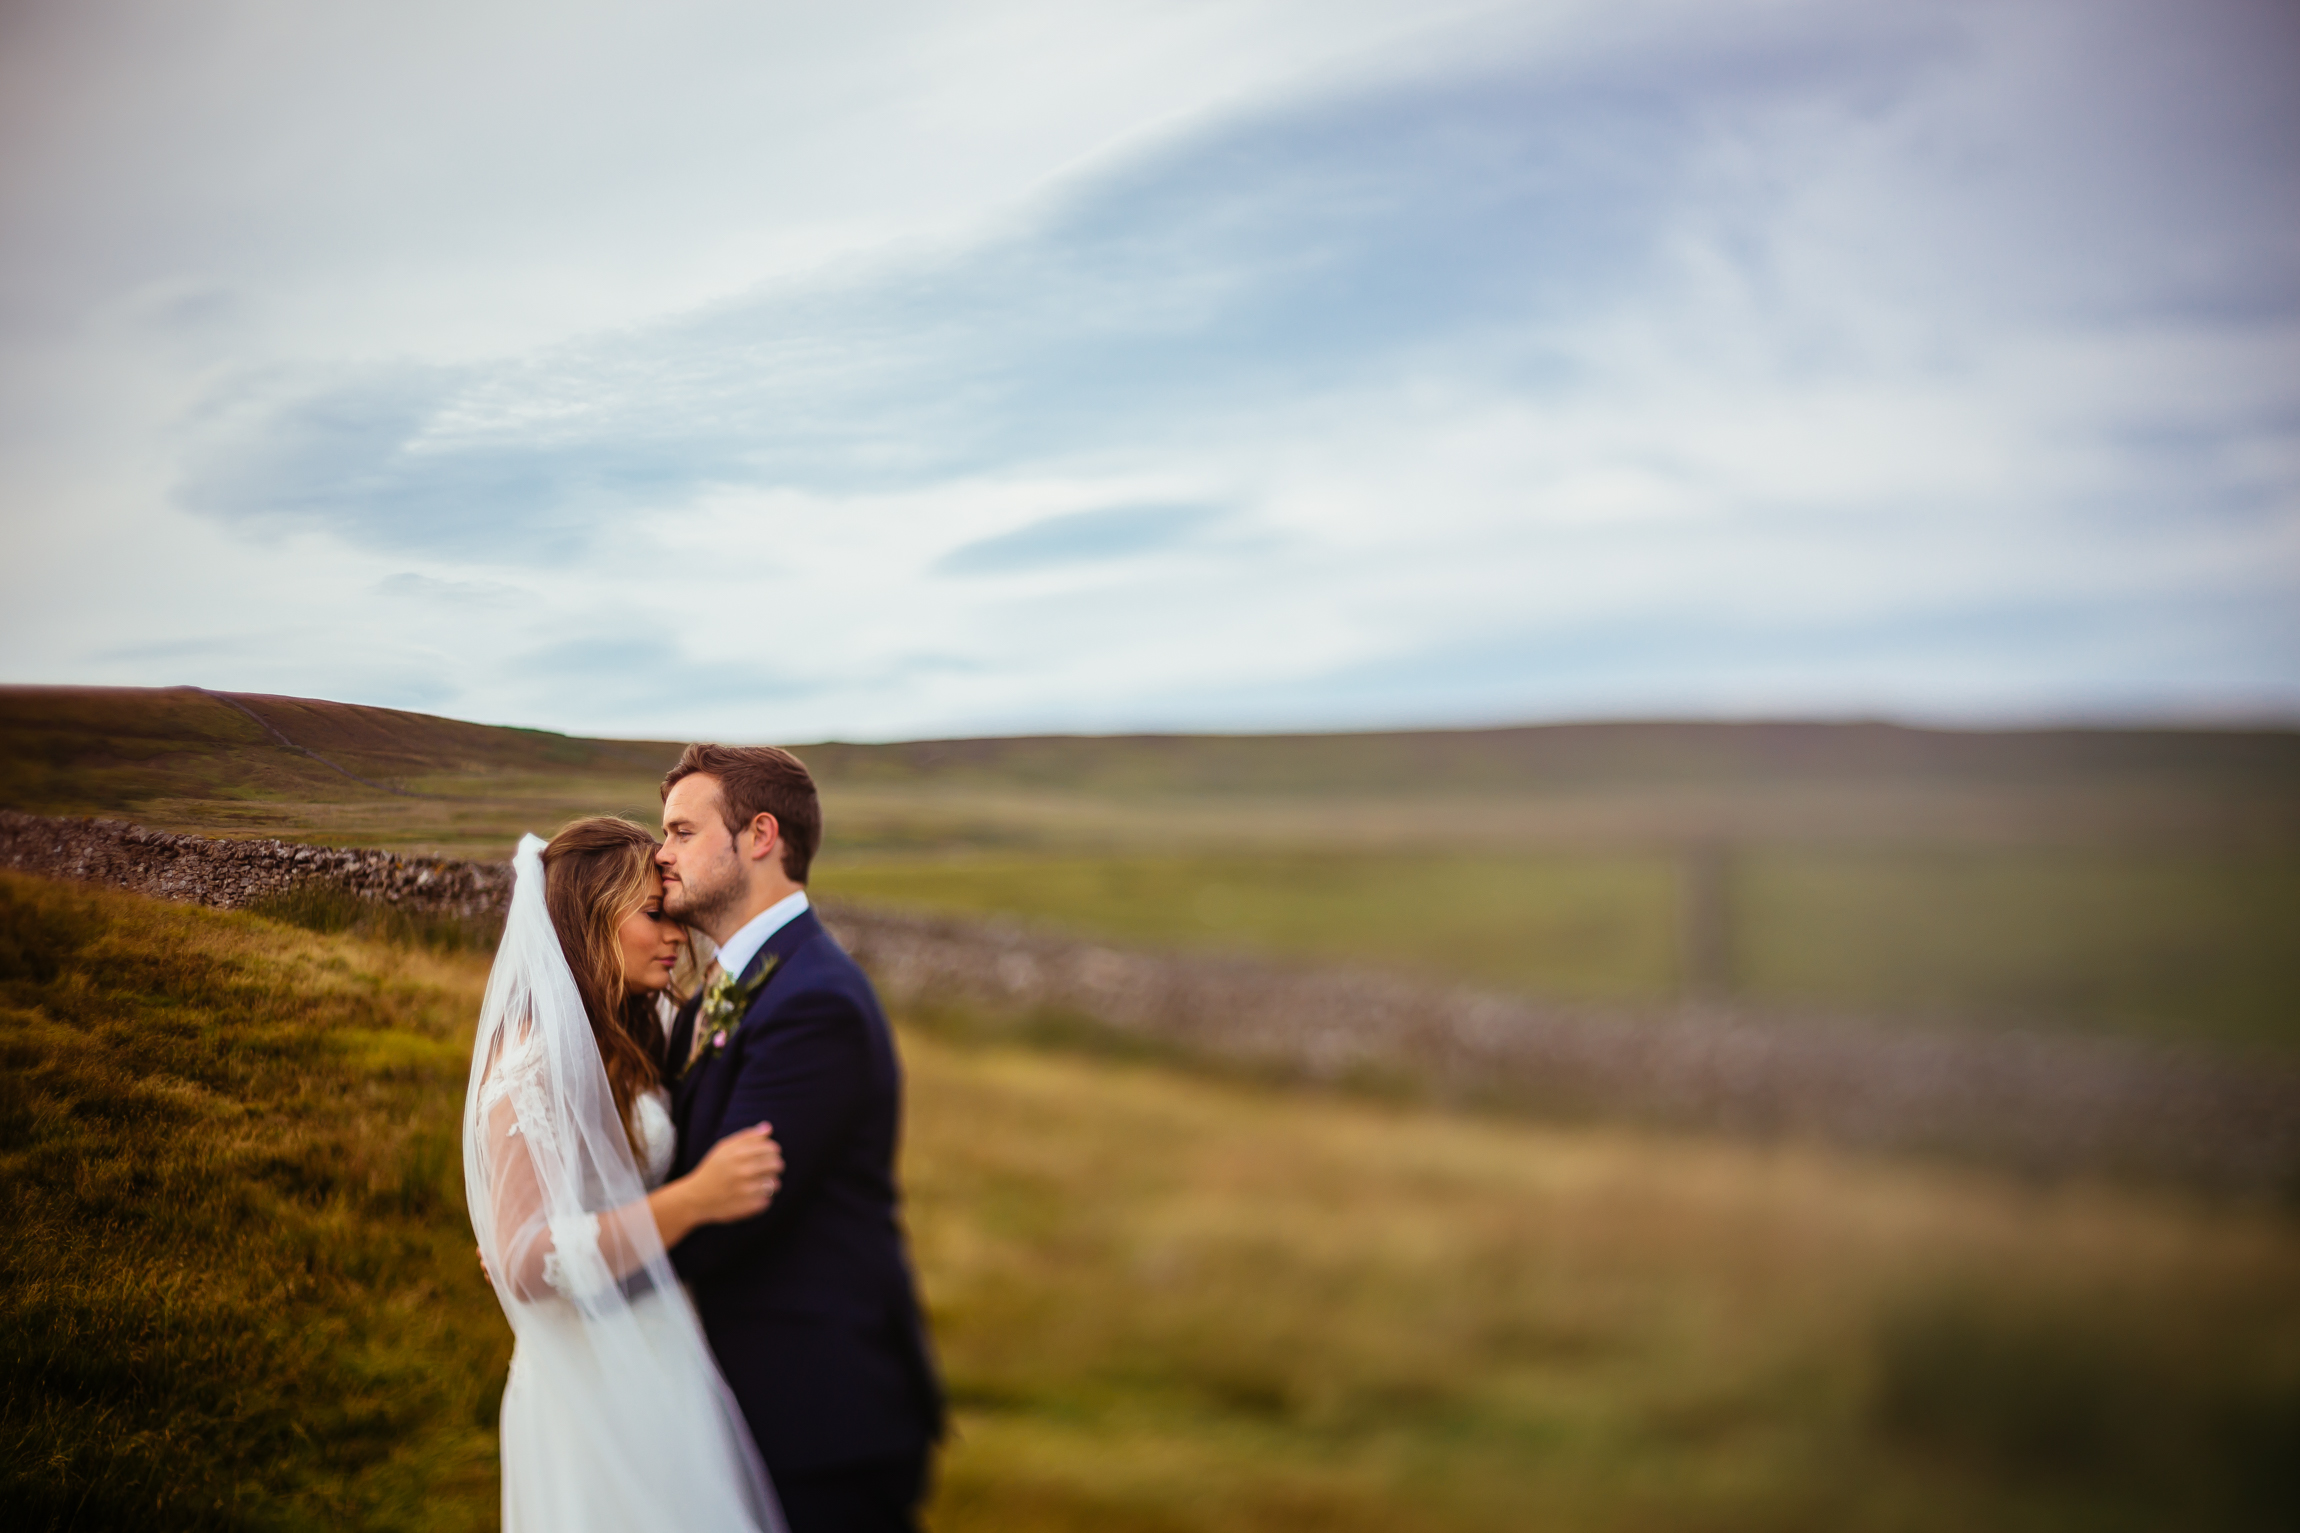 Emma & Dave - Sansom Photography Yorkshire Dales Wedding Photography UK-44